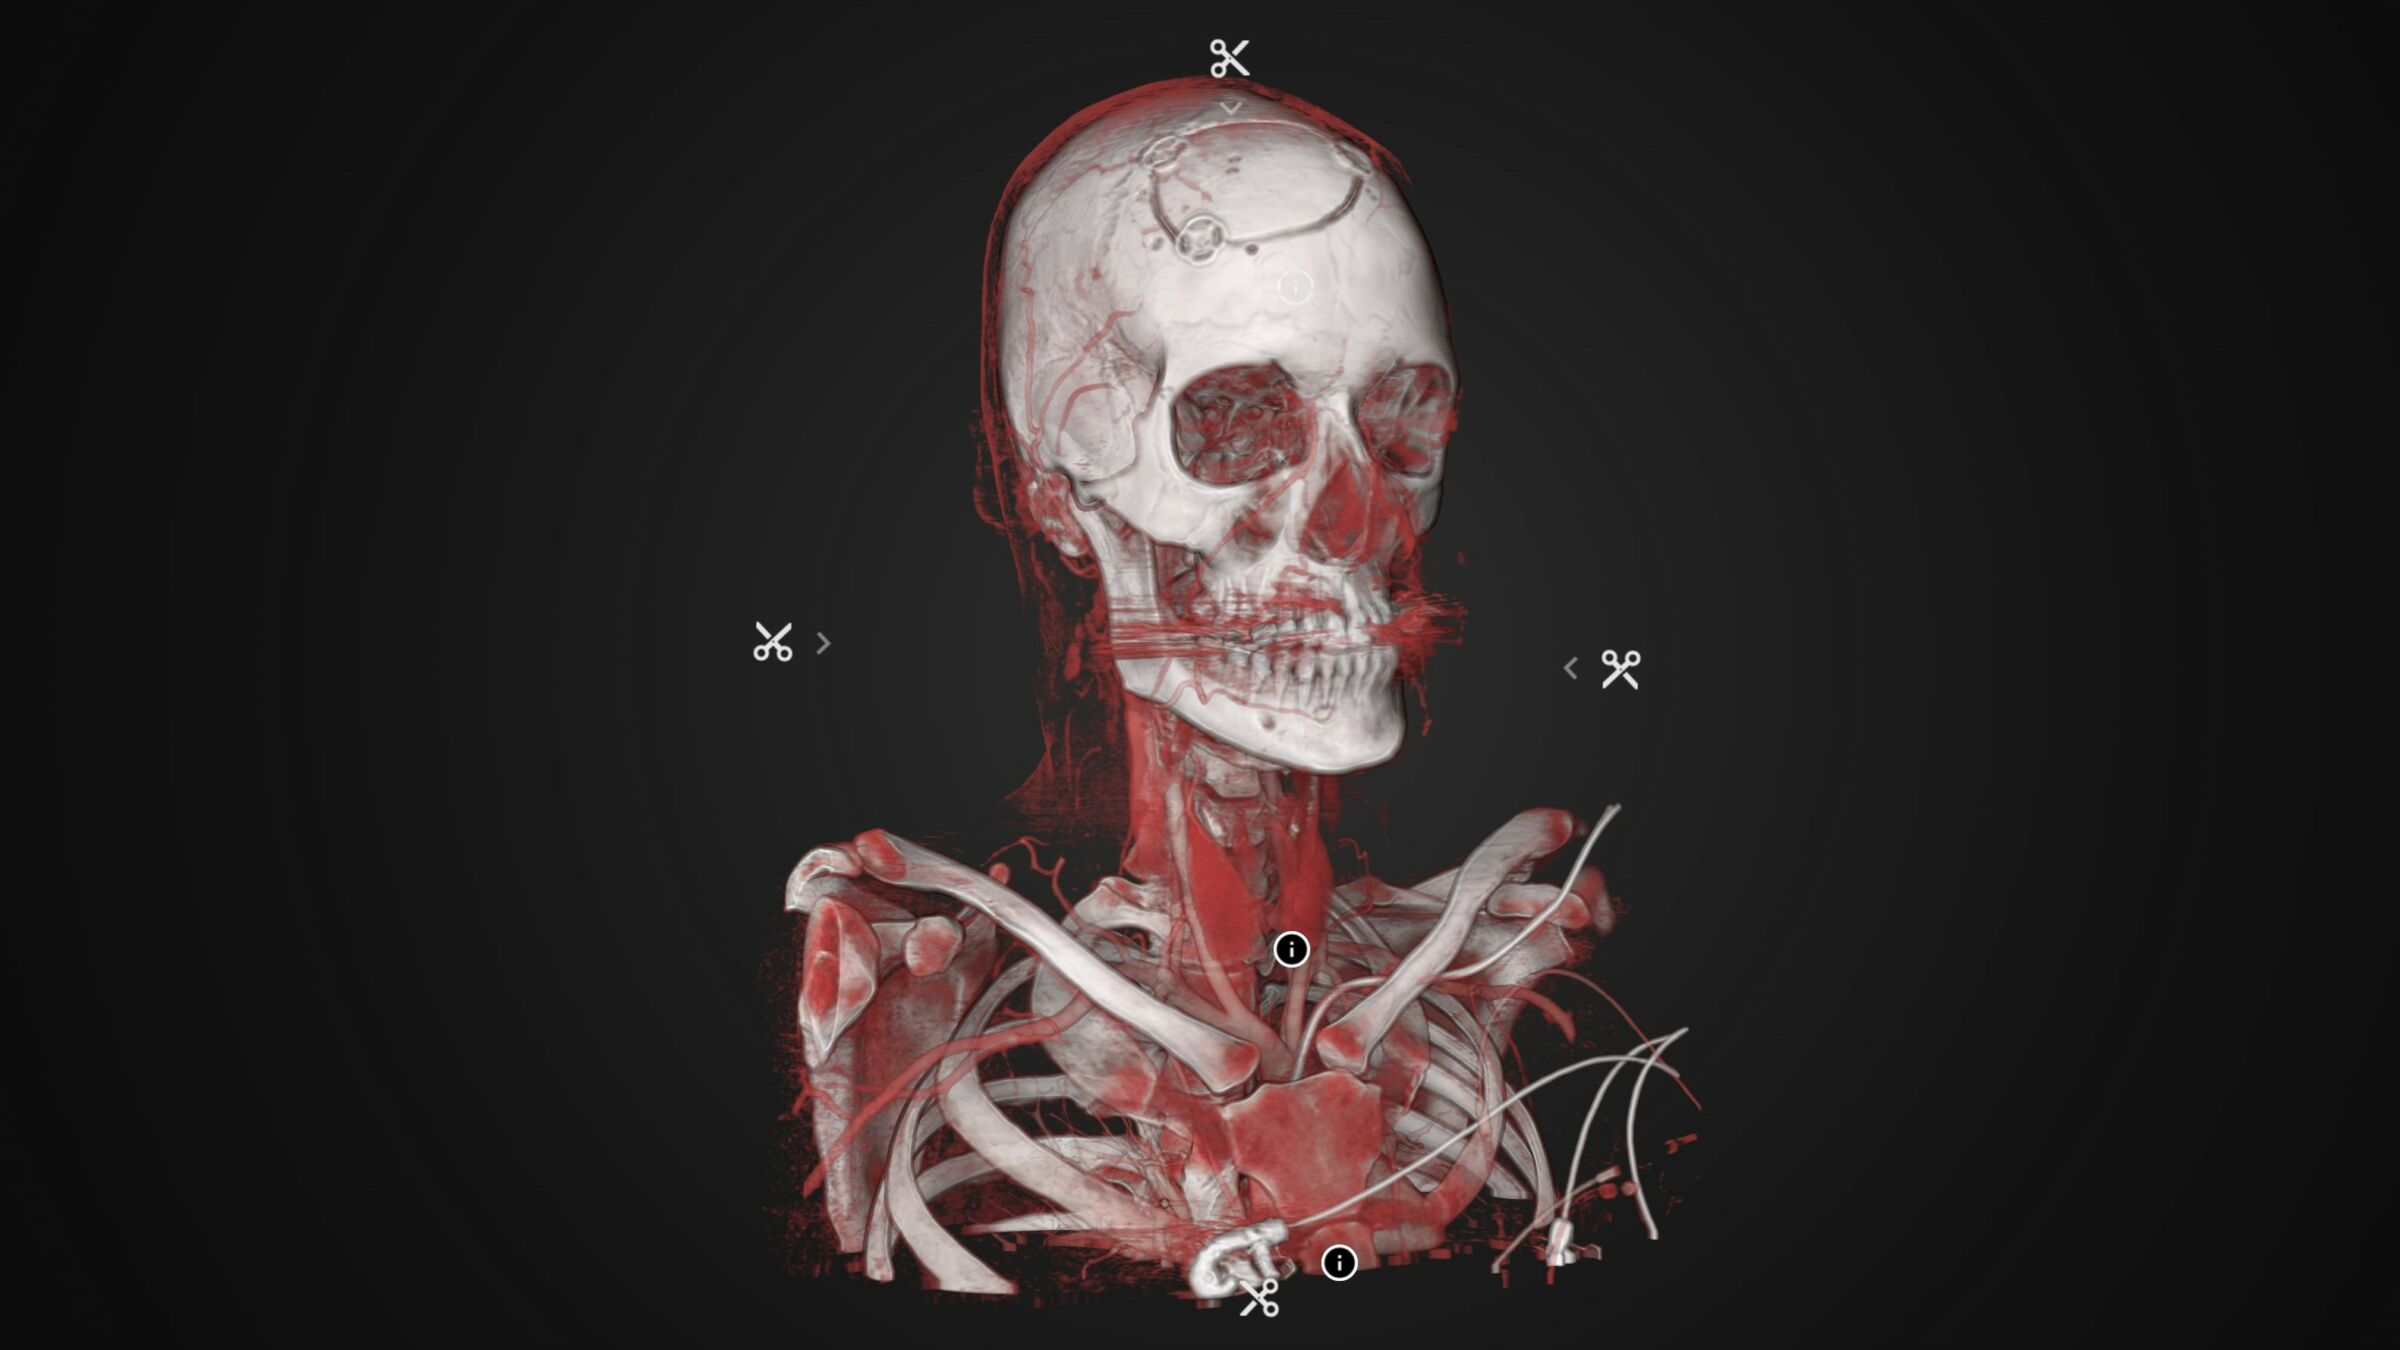 Interactive 3D-visualization of human skeleton with veins exhibited in Inside Explorer